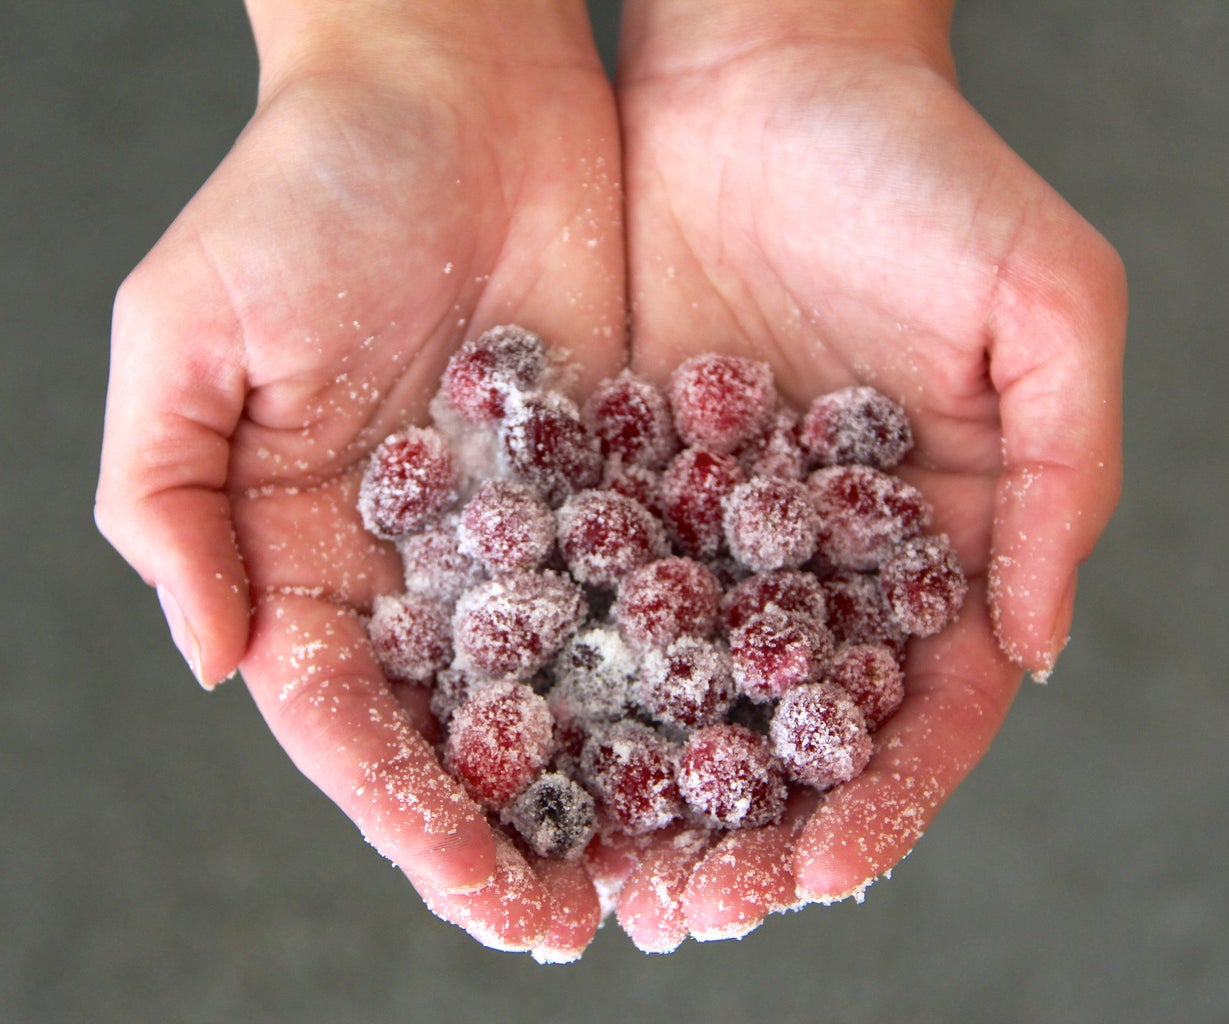 Coat the Berries With Sugar